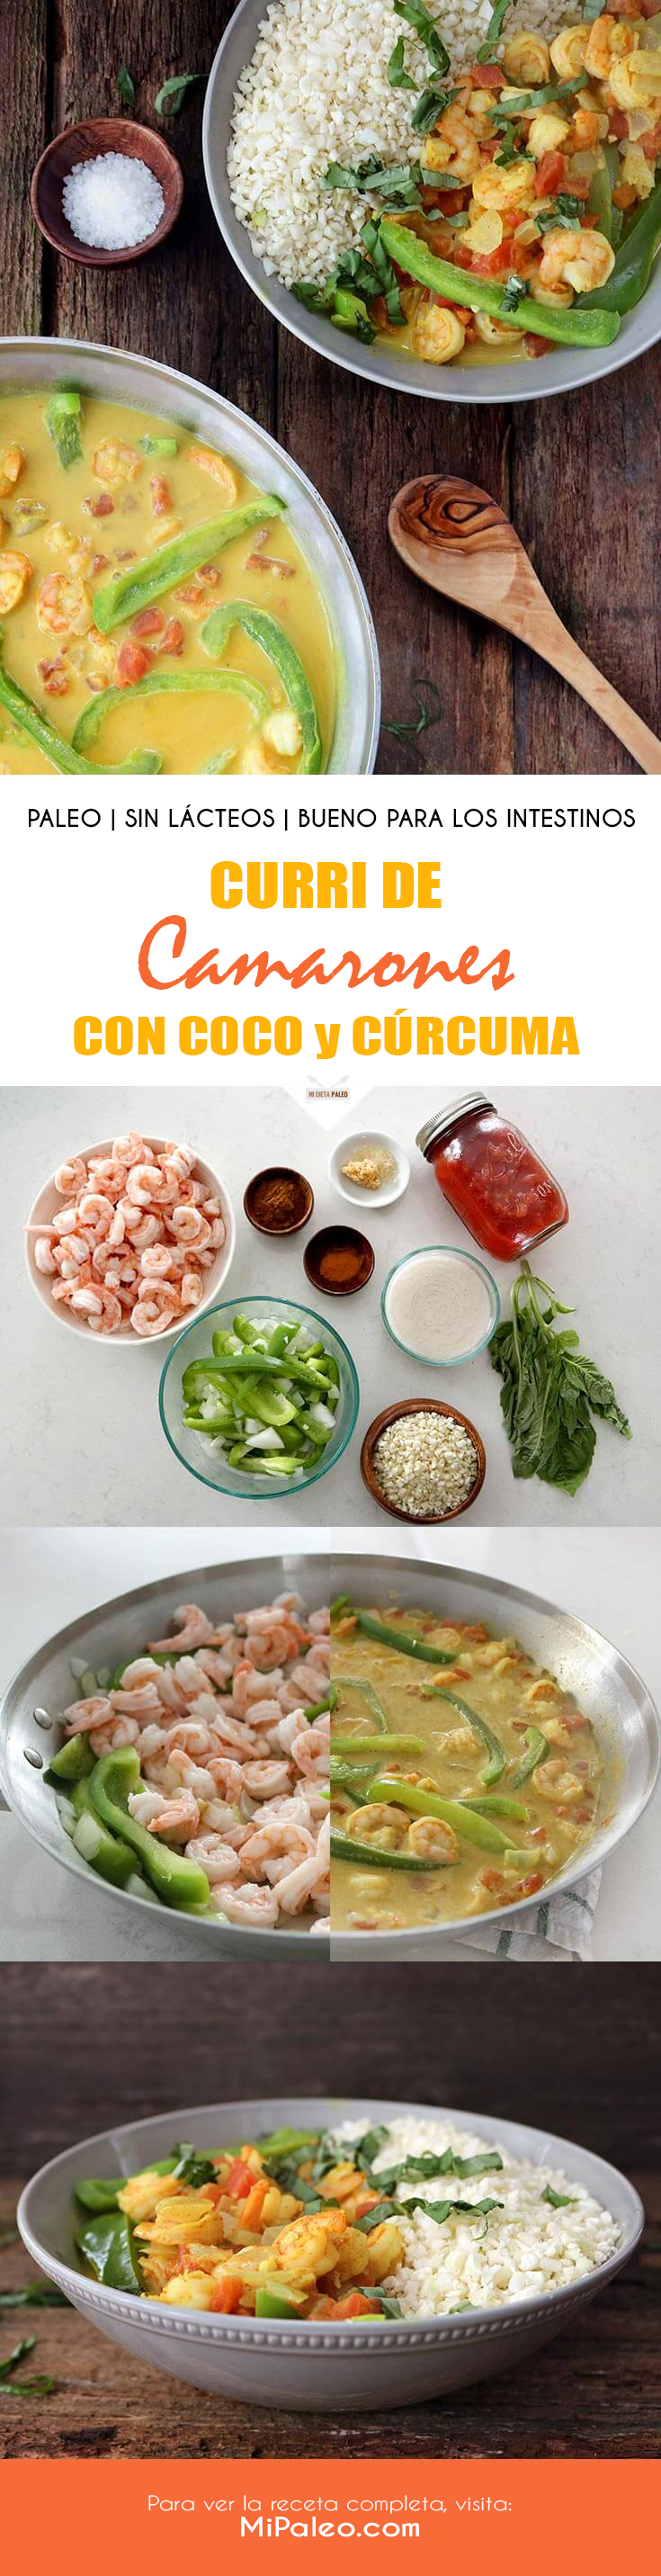 PIN-Coconut-Curry-Shrimp-with-Turmeric